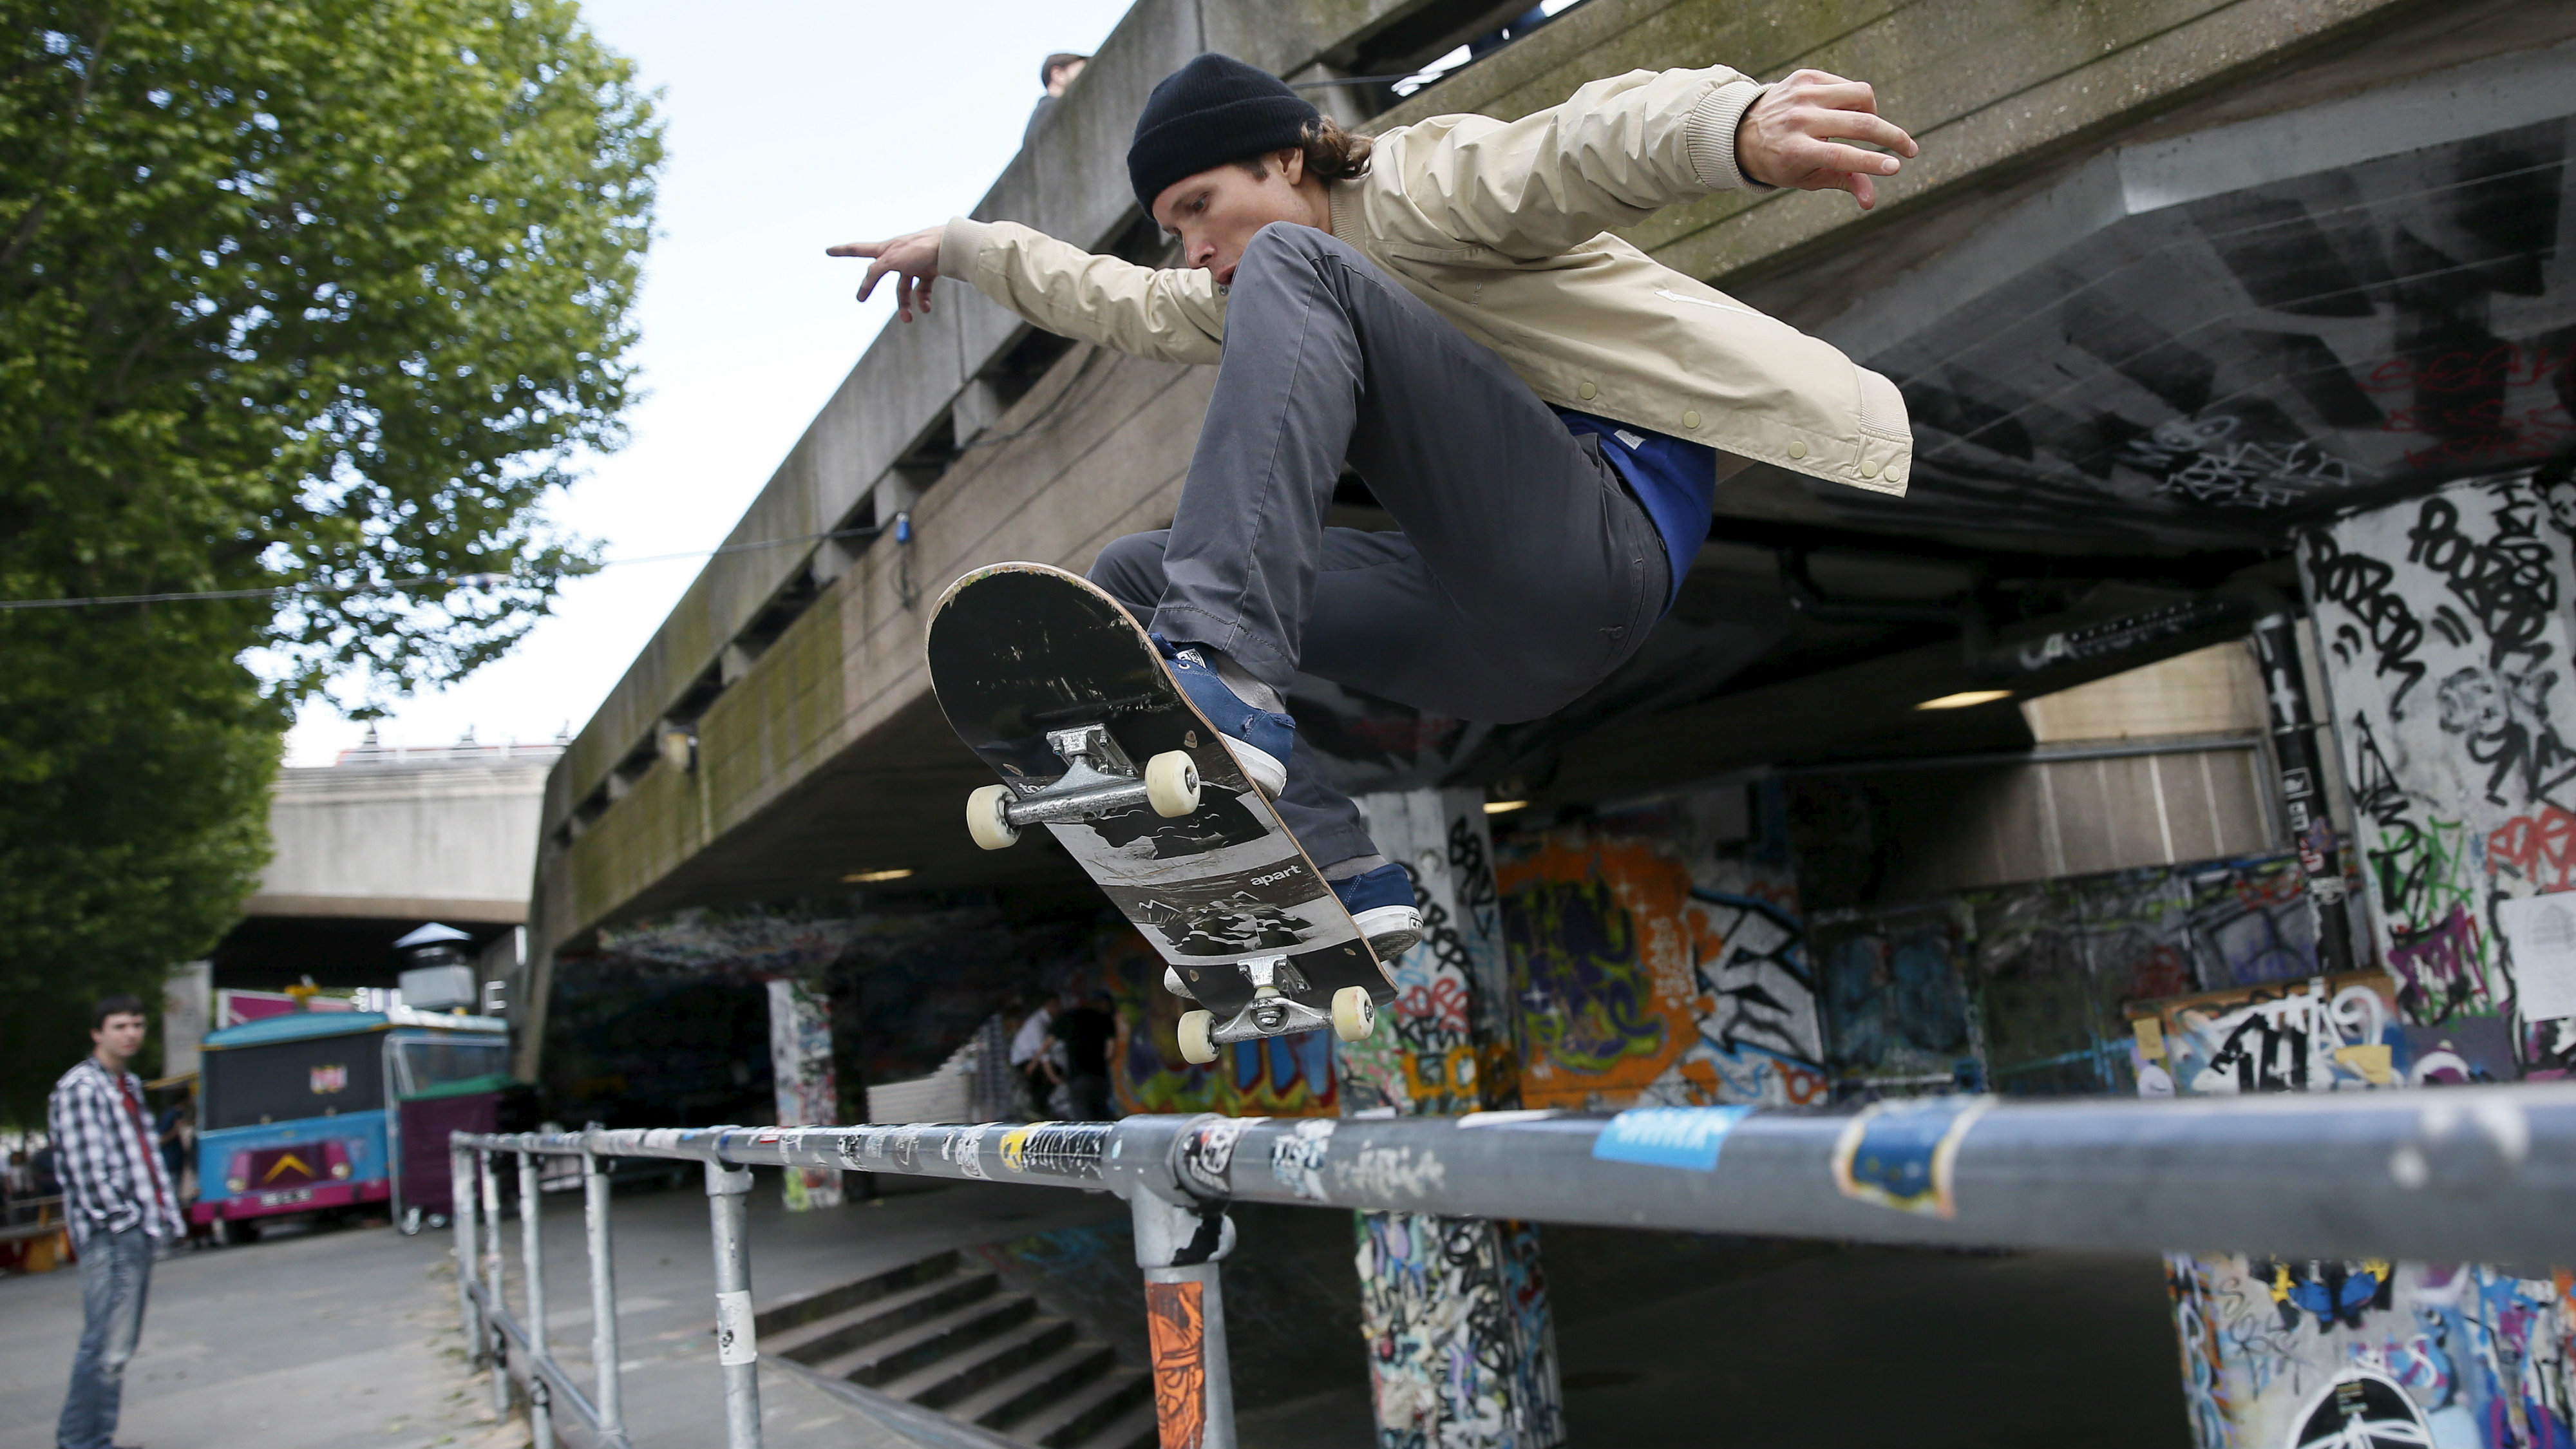 A skateboarder performs a jump over a railing at Southbank in central London, Britain June 3, 2015. REUTERS/Stefan Wermuth